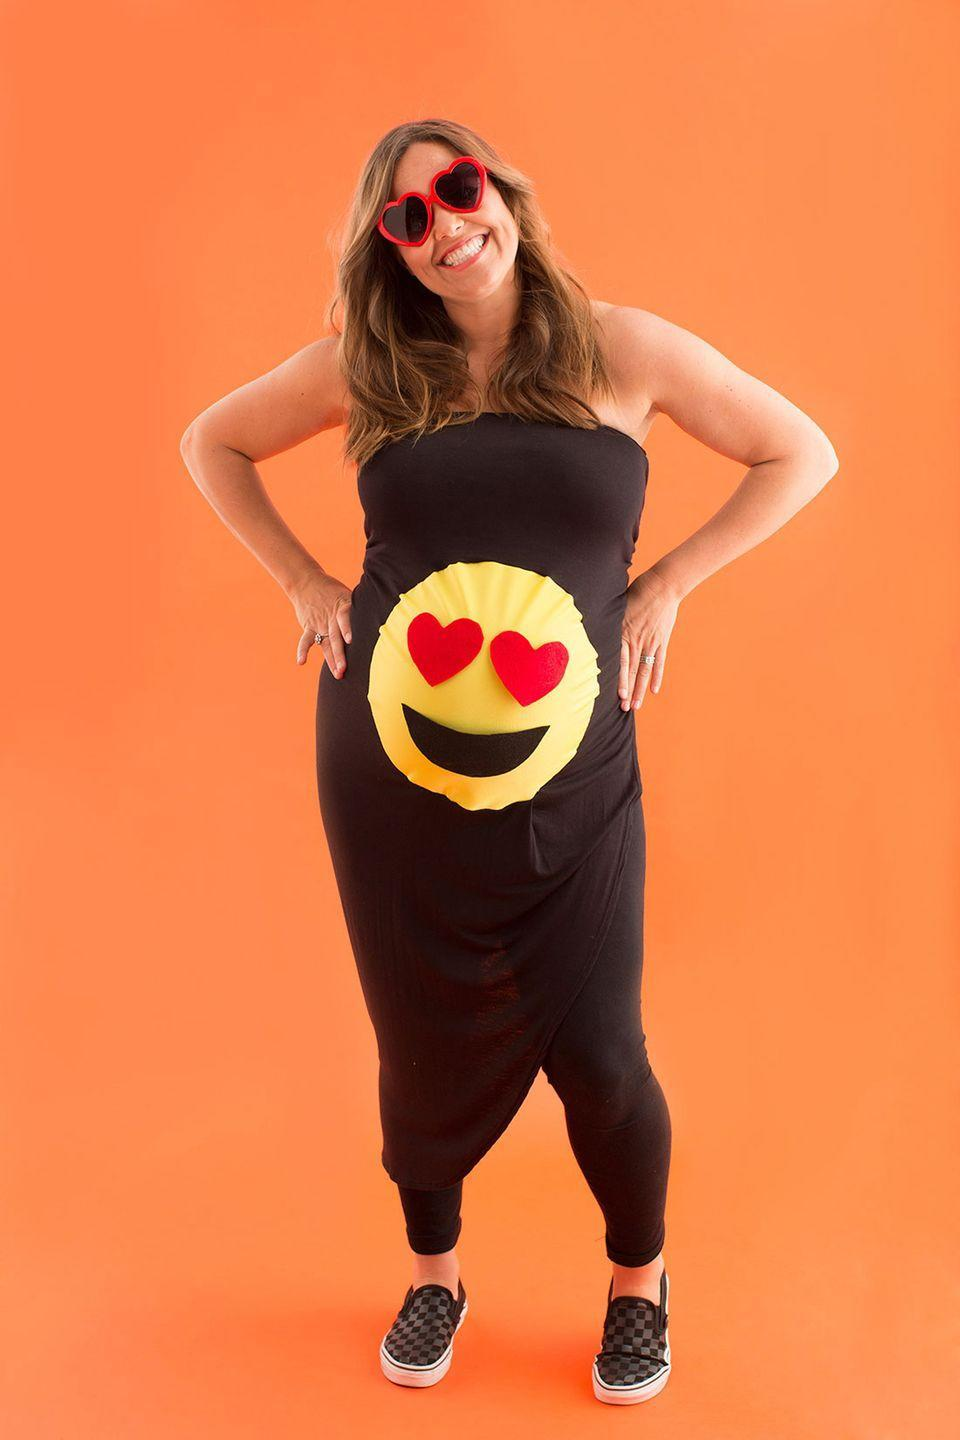 """<p>Our reaction to this costume: 😍</p><p><strong>Get the tutorial at <a href=""""https://www.brit.co/diy-maternity-halloween-costumes/"""" rel=""""nofollow noopener"""" target=""""_blank"""" data-ylk=""""slk:Brit + Co"""" class=""""link rapid-noclick-resp"""">Brit + Co</a>.</strong></p><p><a class=""""link rapid-noclick-resp"""" href=""""https://www.amazon.com/Armear-Fashion-Oversized-Plastic-Sunglasses/dp/B01MRTKOVI/?tag=syn-yahoo-20&ascsubtag=%5Bartid%7C10050.g.4972%5Bsrc%7Cyahoo-us"""" rel=""""nofollow noopener"""" target=""""_blank"""" data-ylk=""""slk:SHOP HEART SUNGLASSES"""">SHOP HEART SUNGLASSES</a> </p>"""